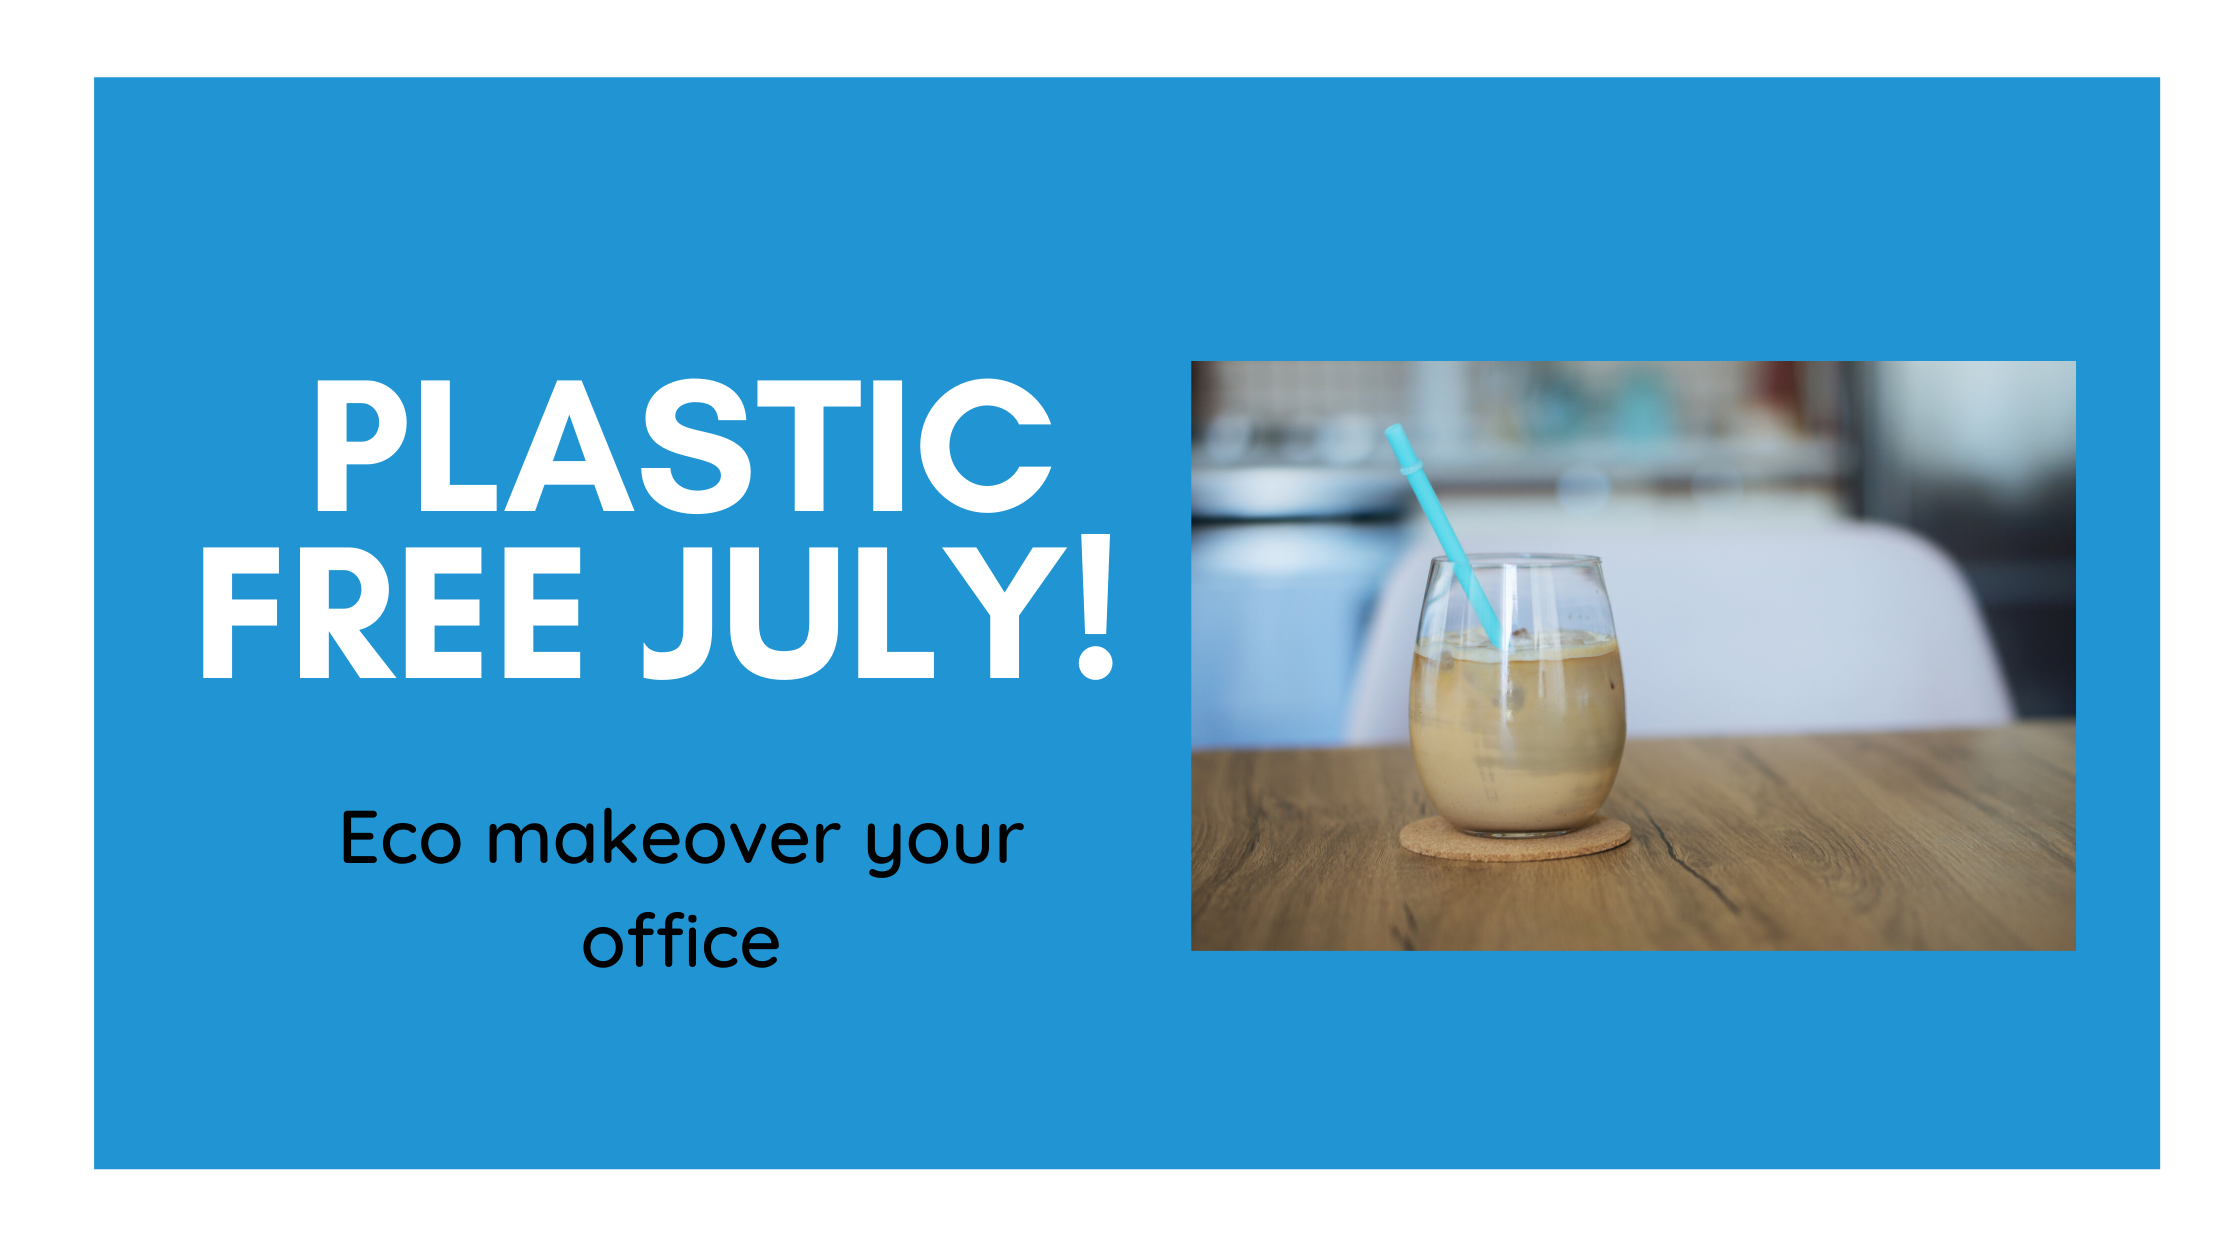 Plastic-free July! 5 tips for an eco-friendly workplace